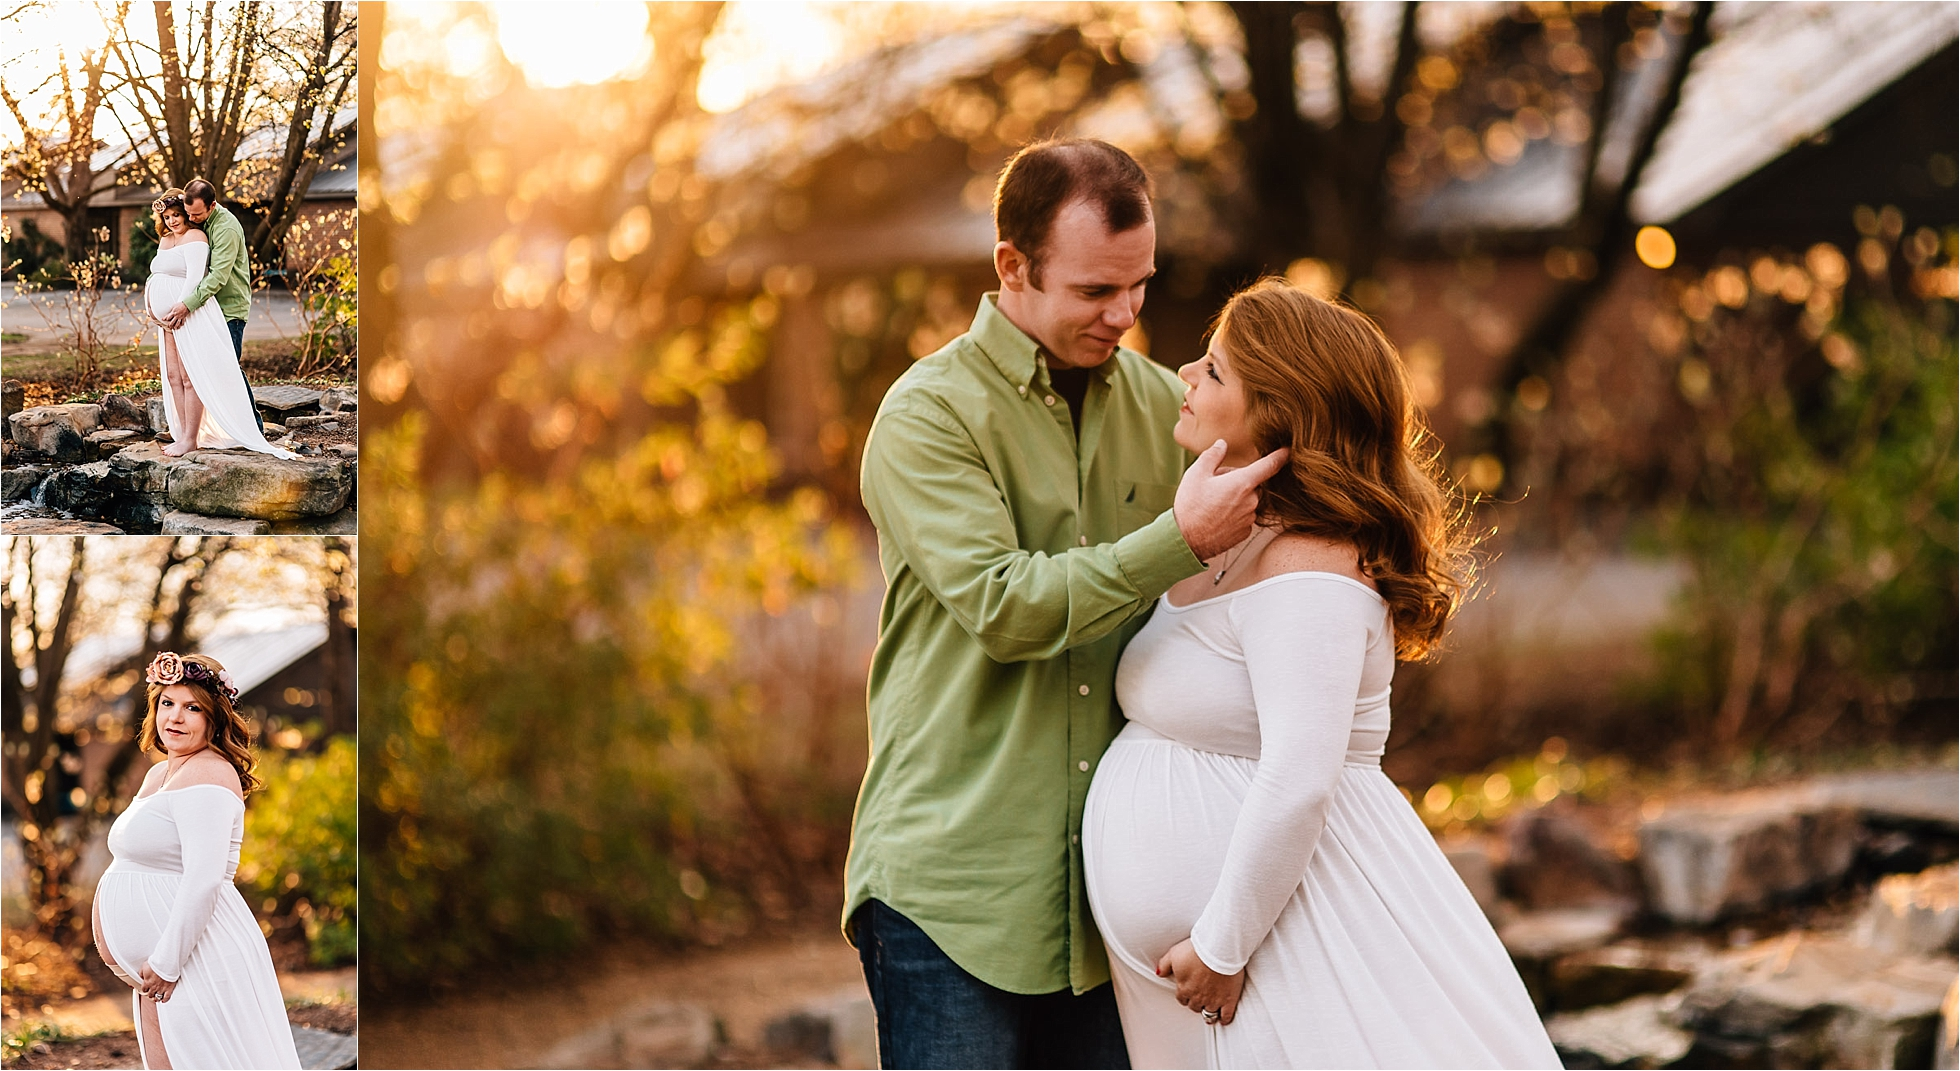 madison-huntsville-al-maternity-newborn-photographer-96